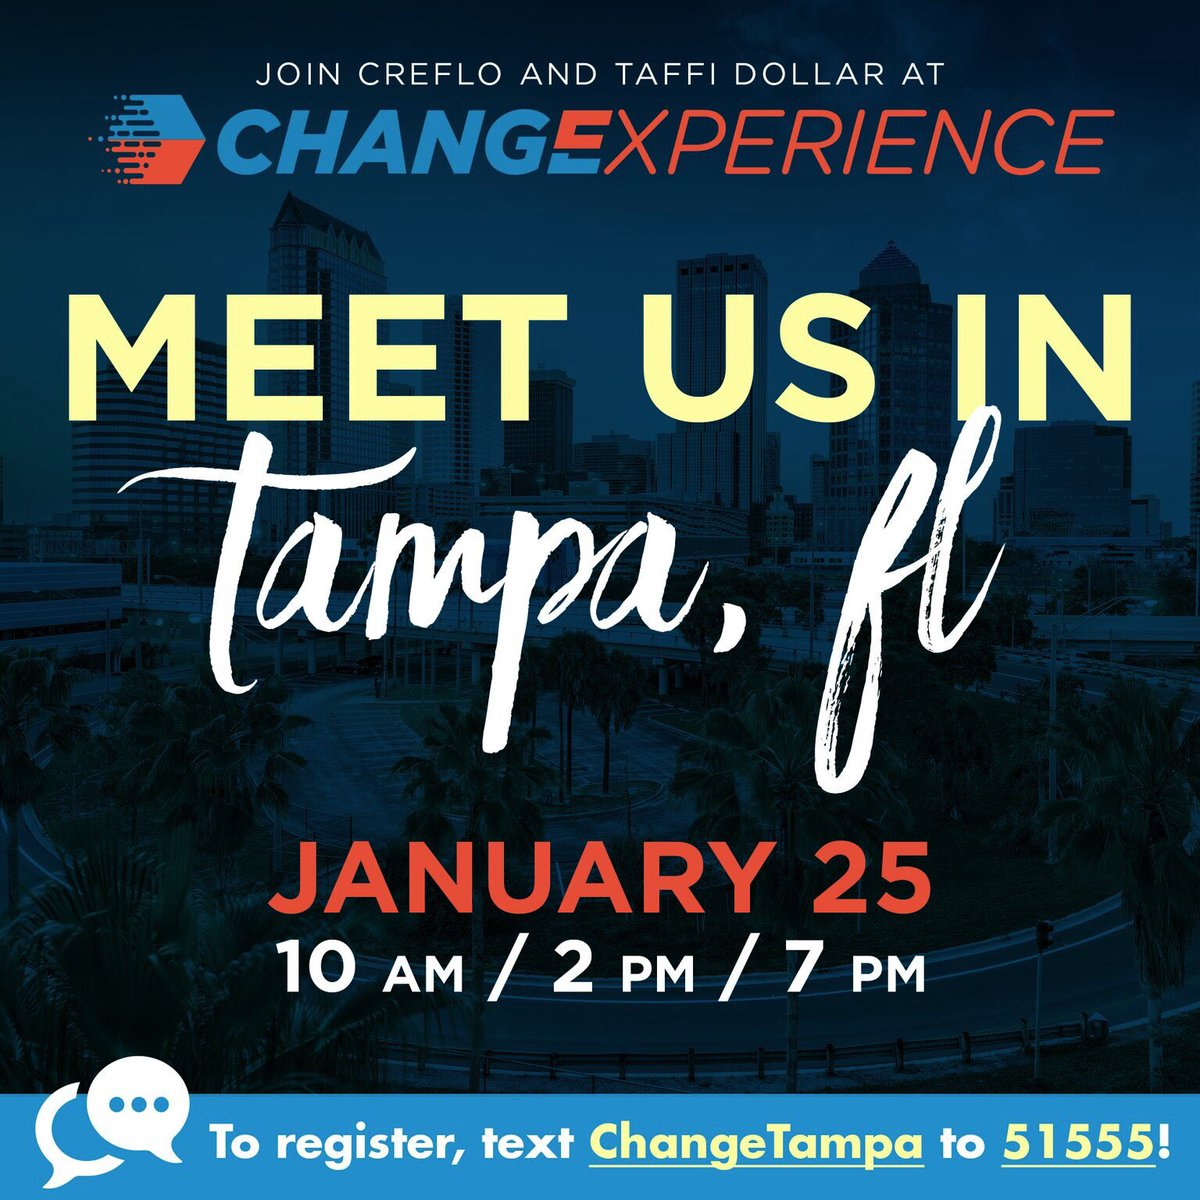 Change Experience 2019 in Tampa, Florida is coming up next! This event is free. Don't miss out! Click here to register …https://changeexperience2019tampa.eventbrite.com     #ChangeExperience2019  #WorldChangers  #WorldChangersChurchInternational